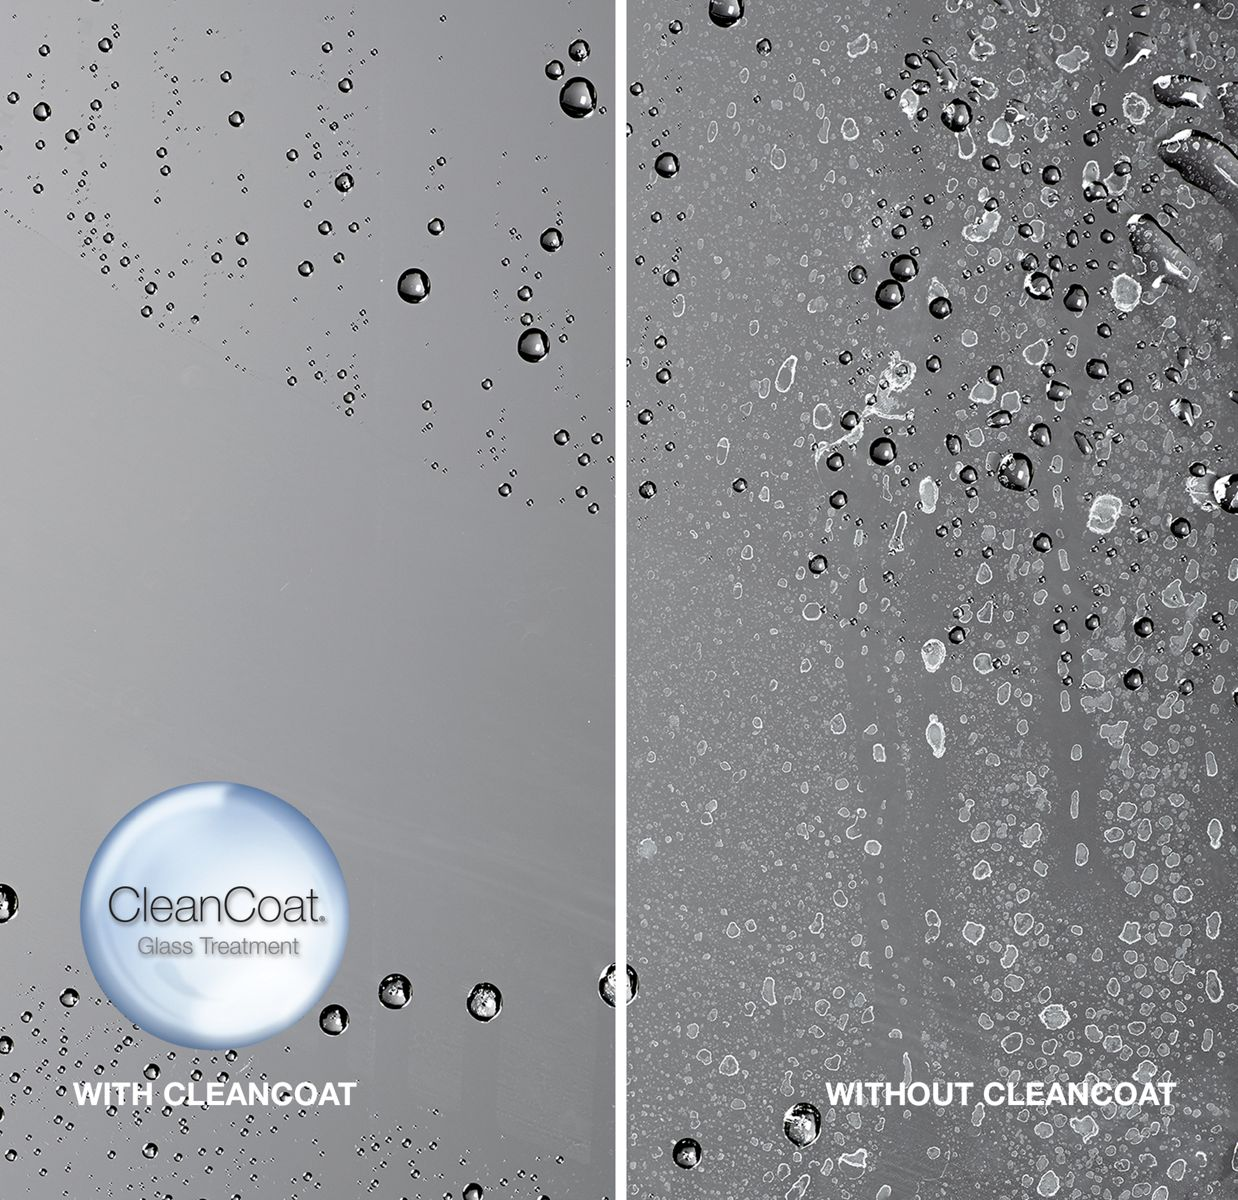 Shower Door Cleancoat Glass Treatment Care Cleaning